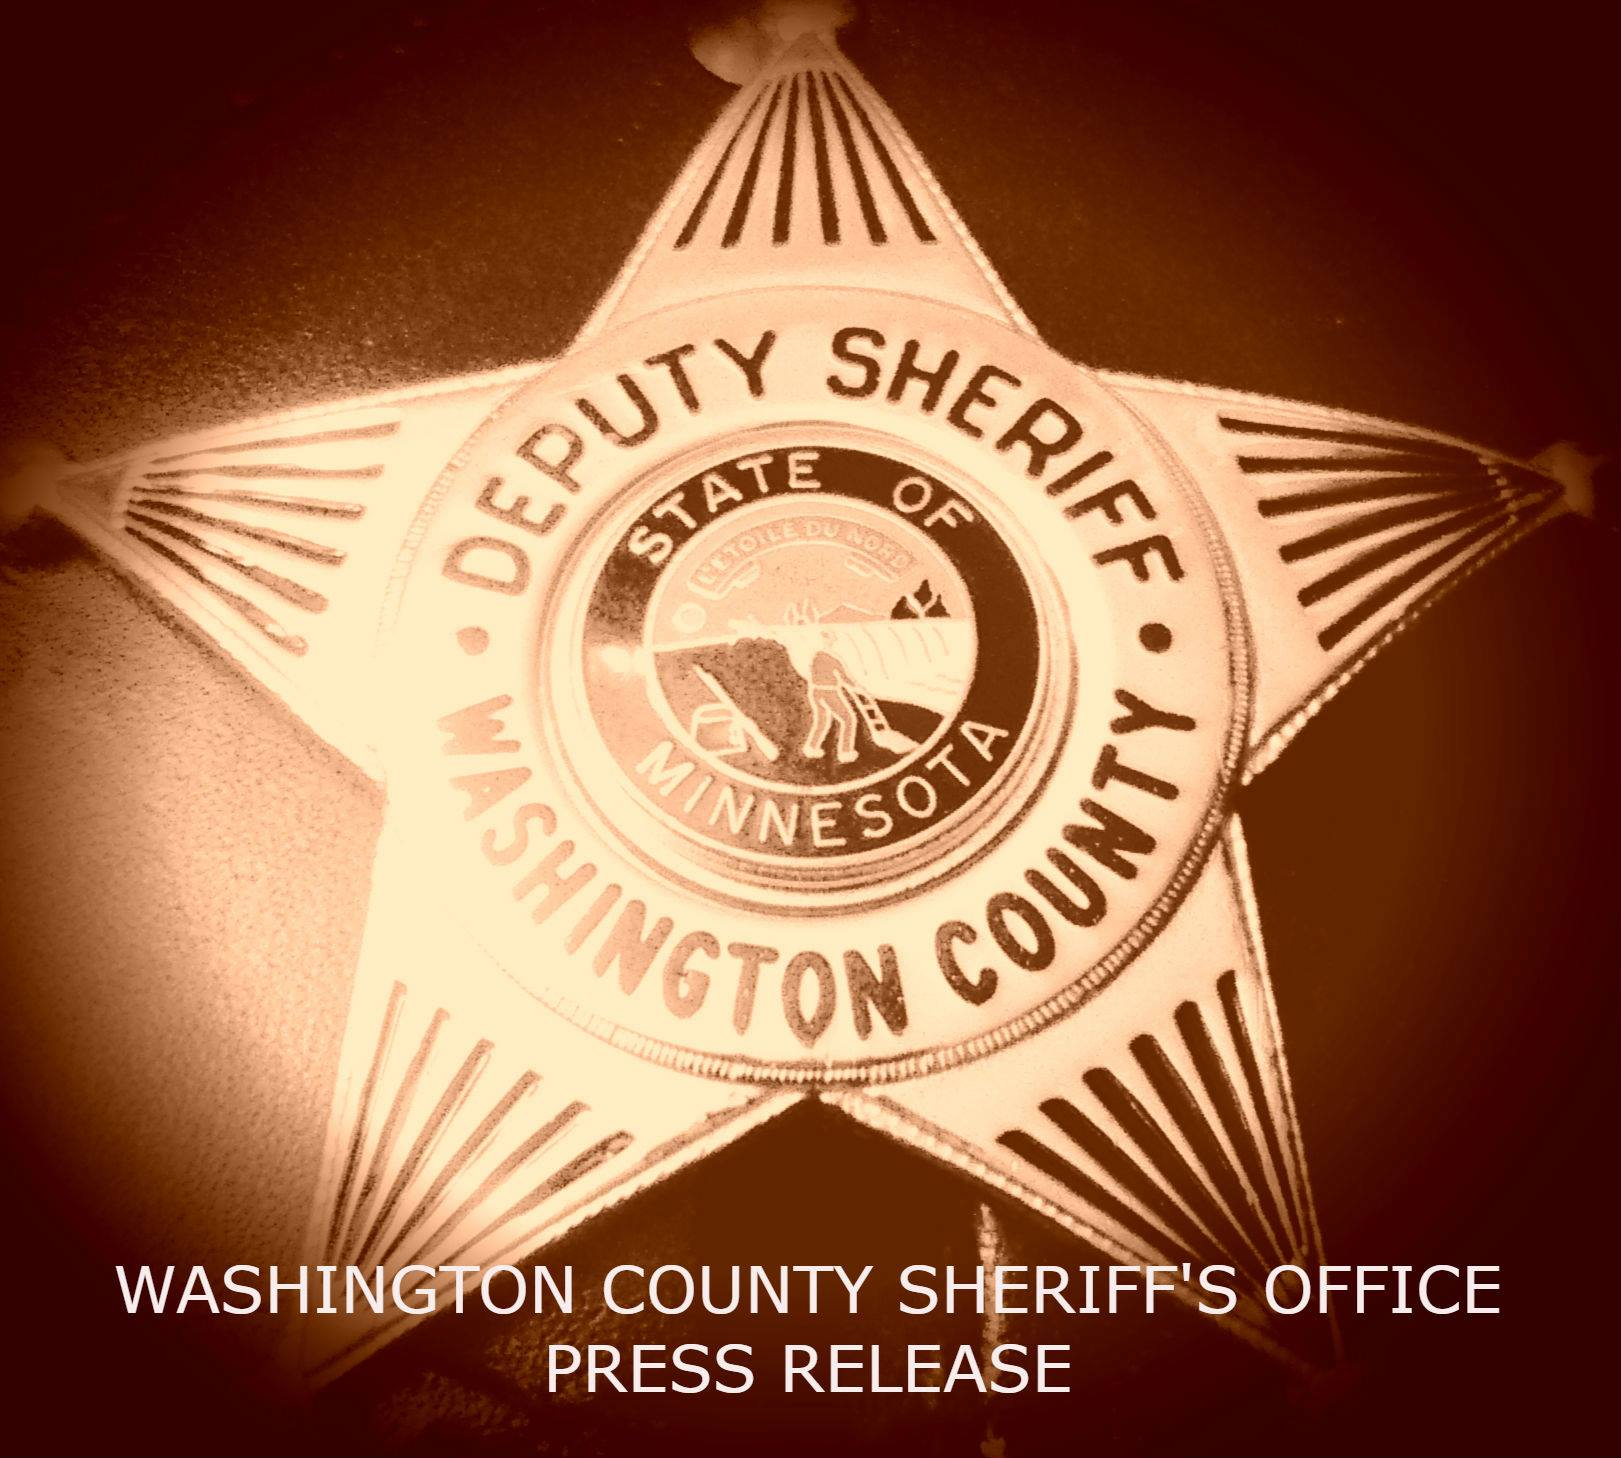 Washington County Sheriff's Office Press Release (IMAGE)